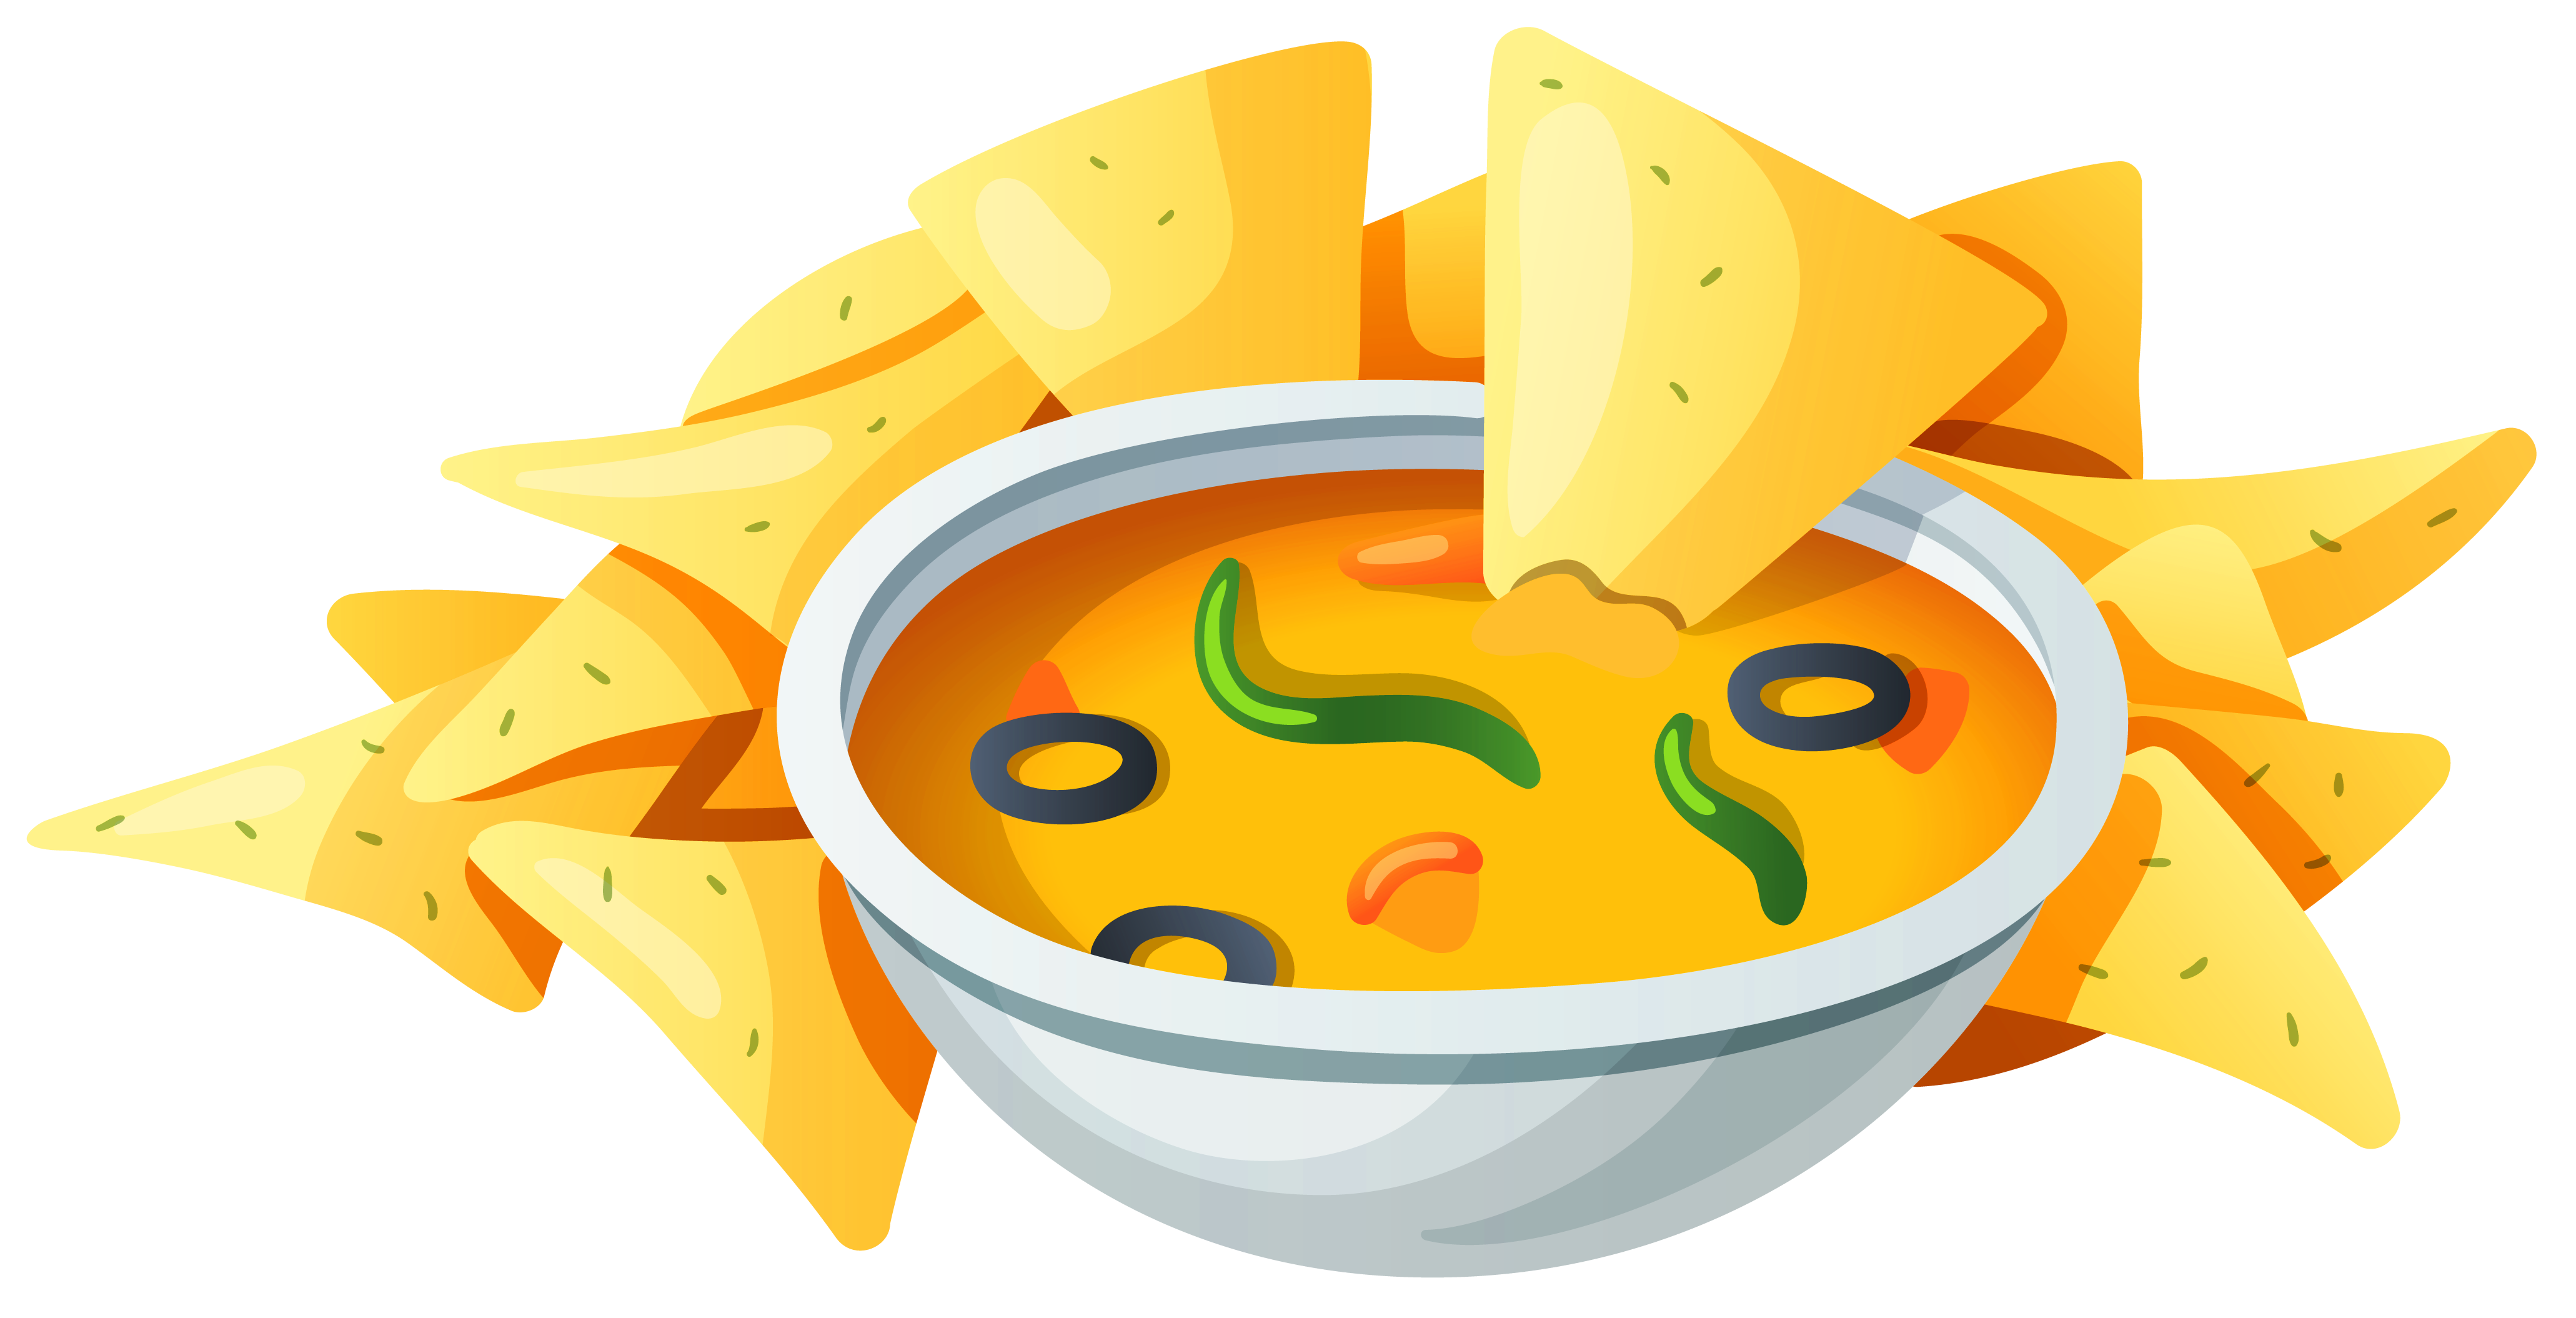 Hispanic food clipart svg transparent library Eat mexican food clipart - Clip Art Library svg transparent library